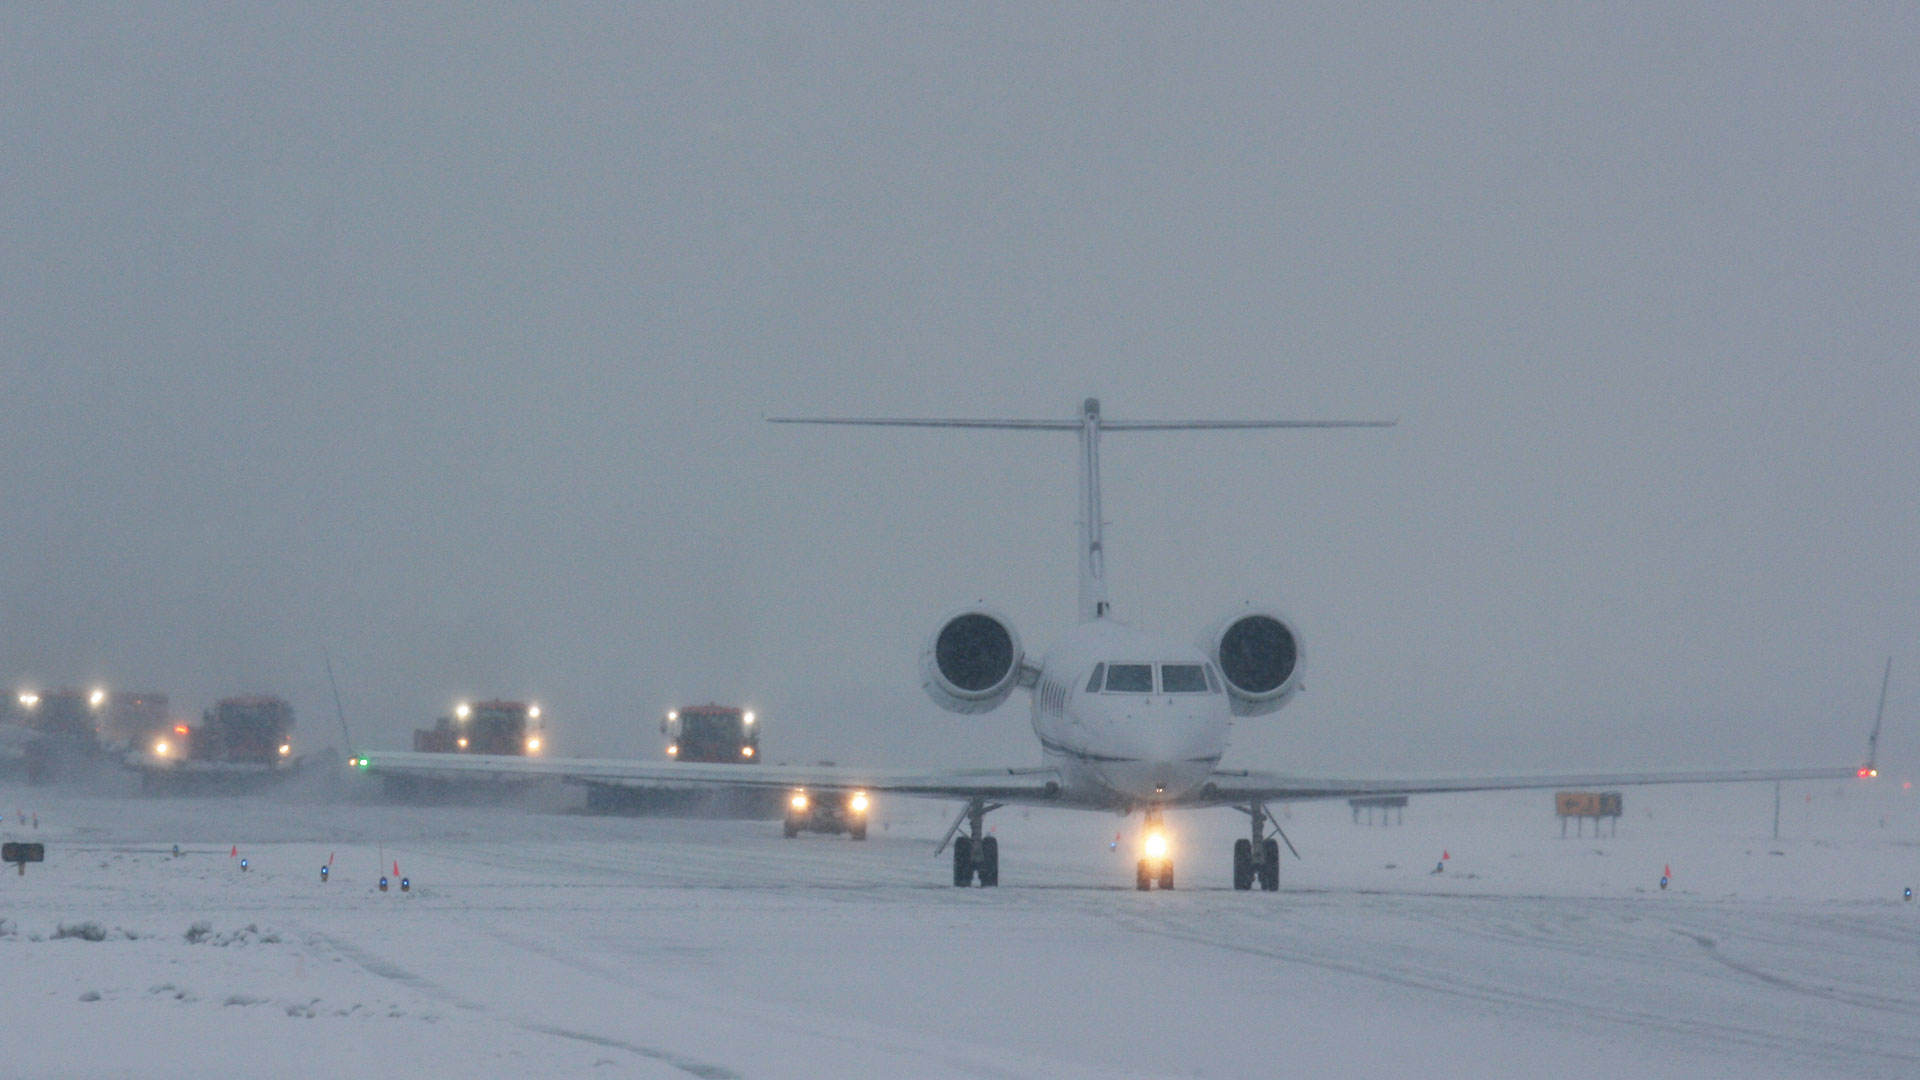 Airplane on runway in snowy conditions with snow plows